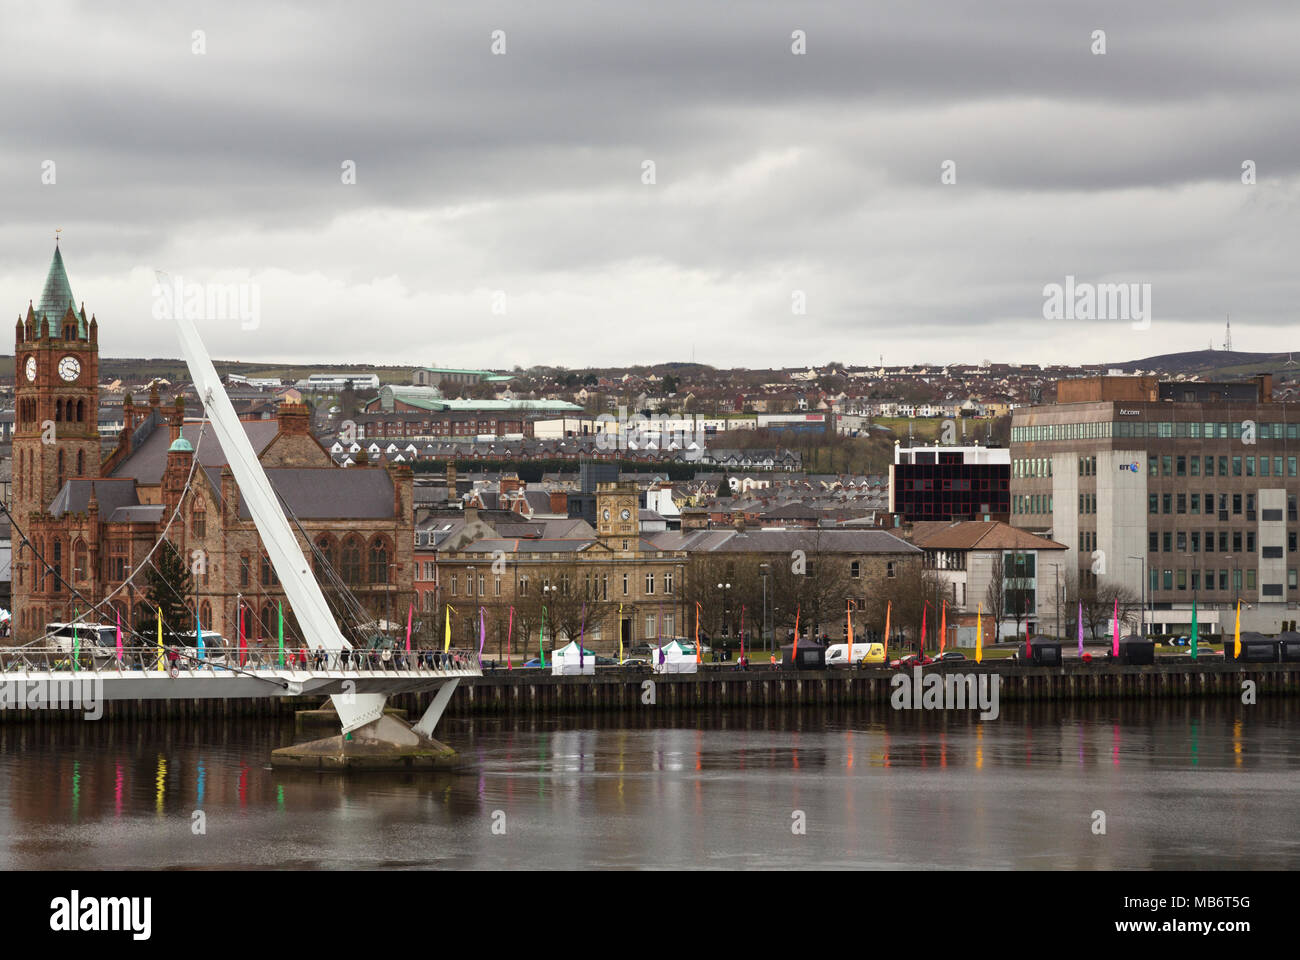 The Peace Bridge and Guildhall, Derry/Londonderry, Northern Ireland - Stock Image